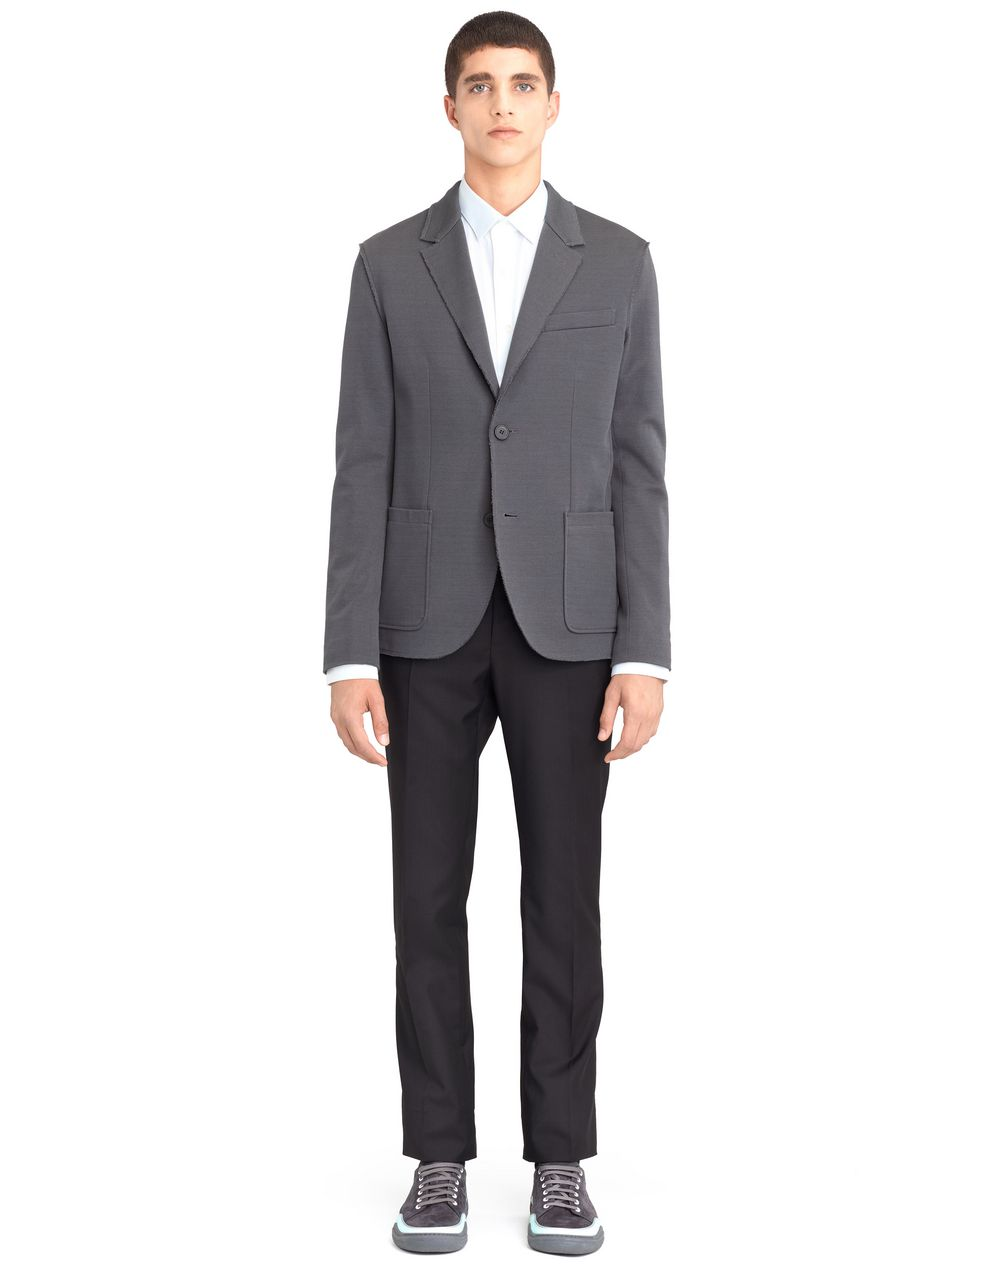 GREY DECONSTRUCTED JACKET - Lanvin